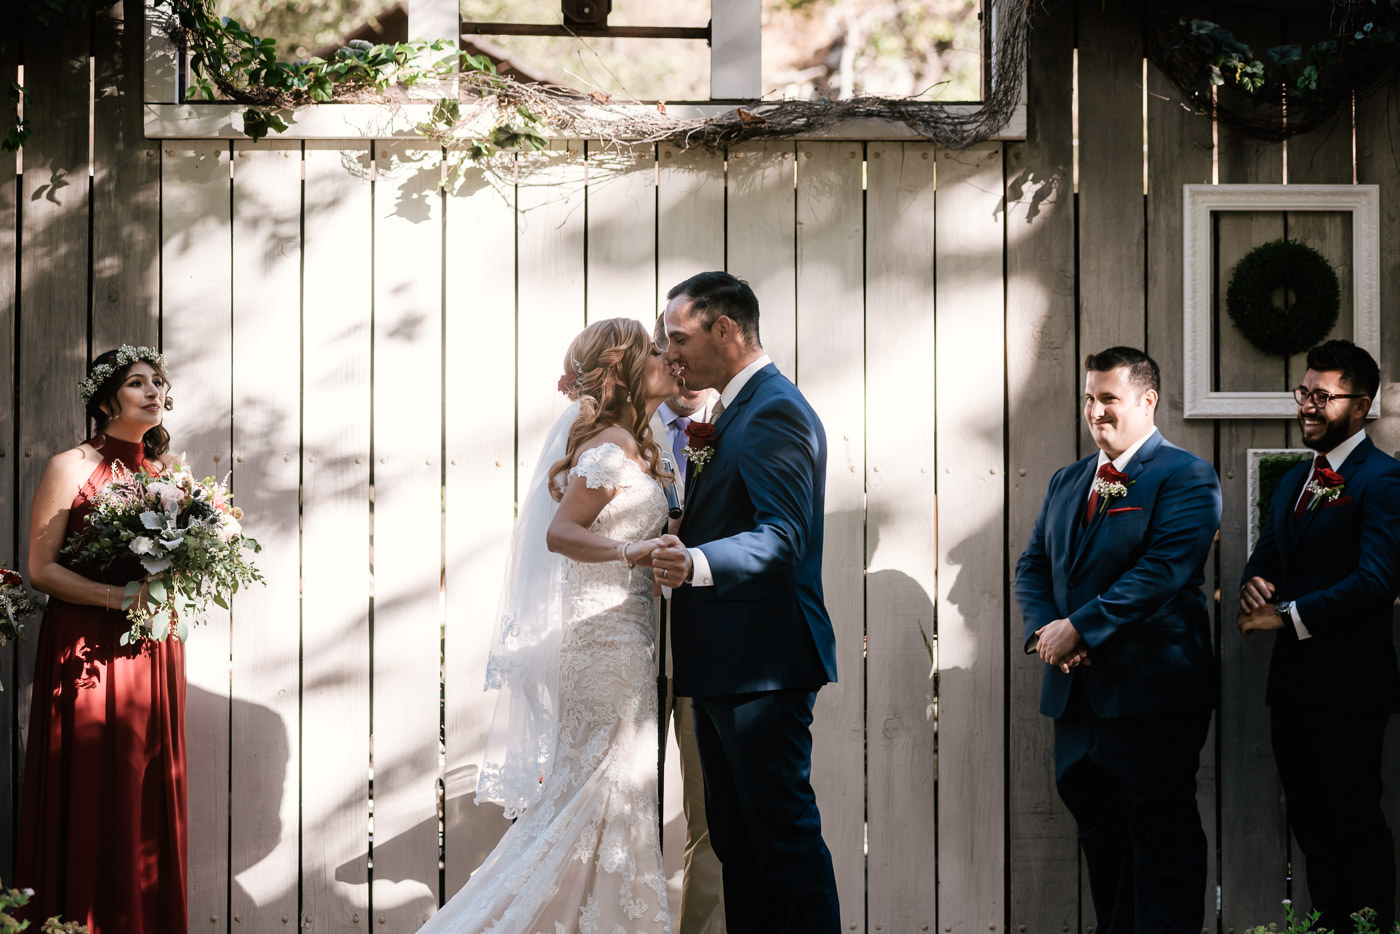 Couple leans in for their first kiss as husband and wife.